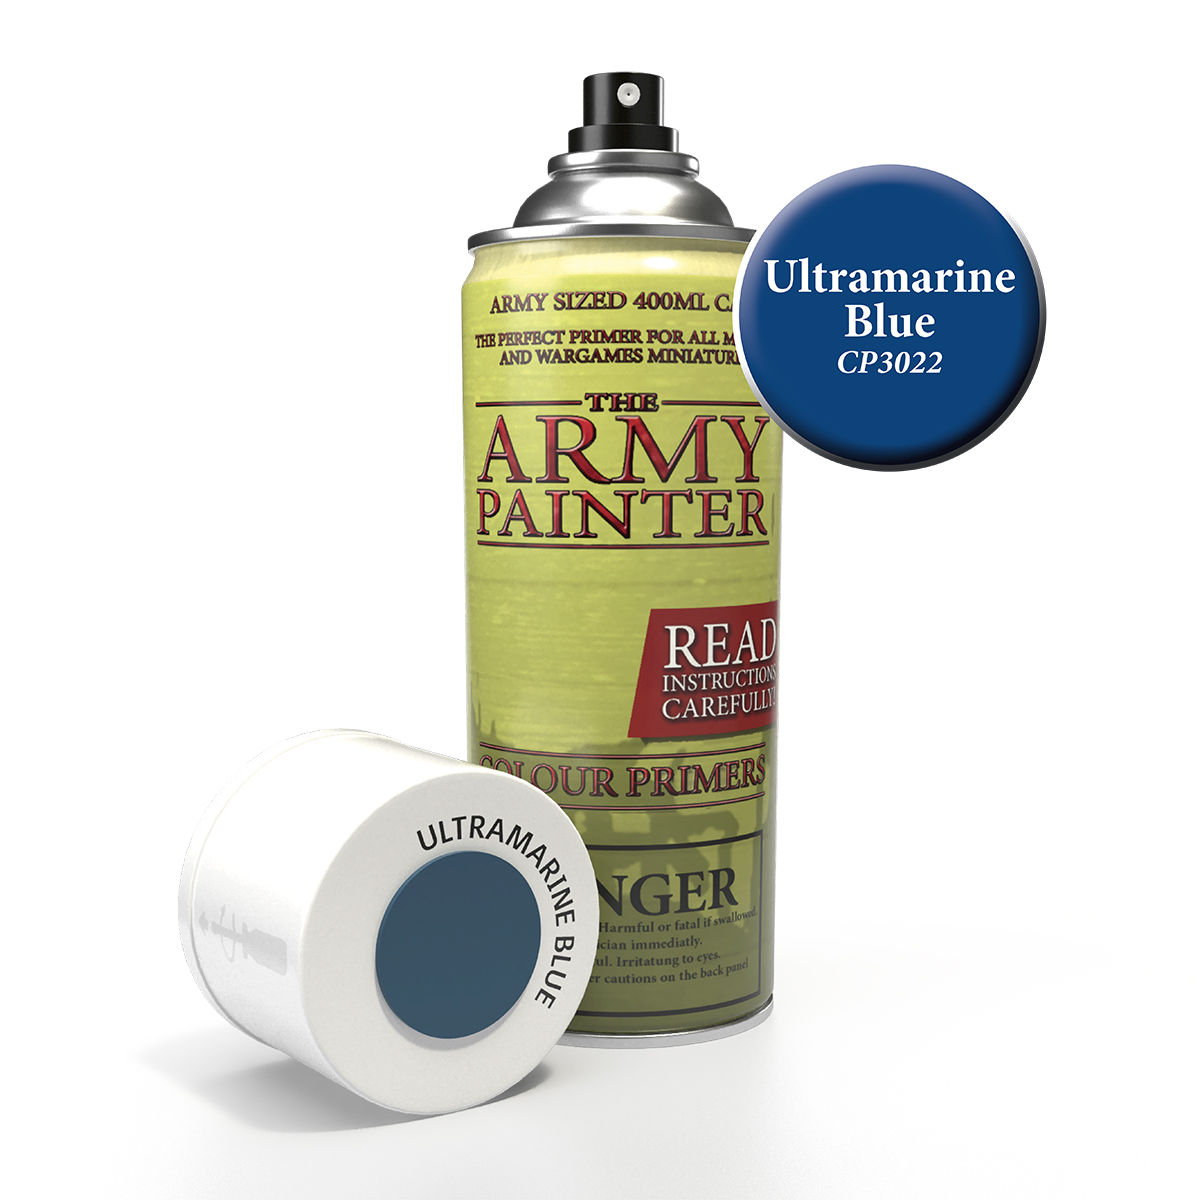 Army Painter Colour Primer - Ultramarine Blue